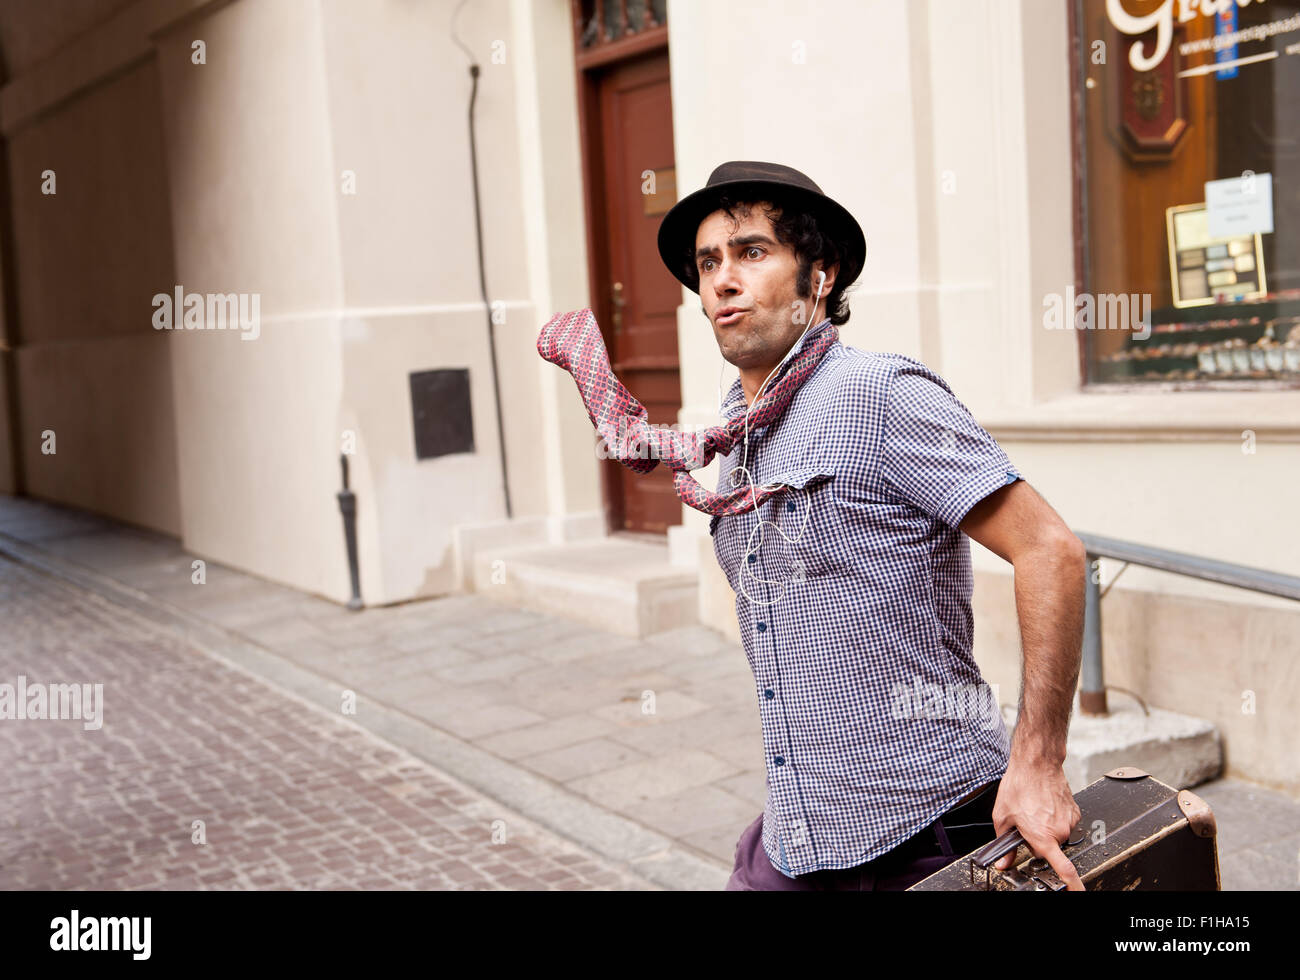 Funny face mime street performer - Stock Image